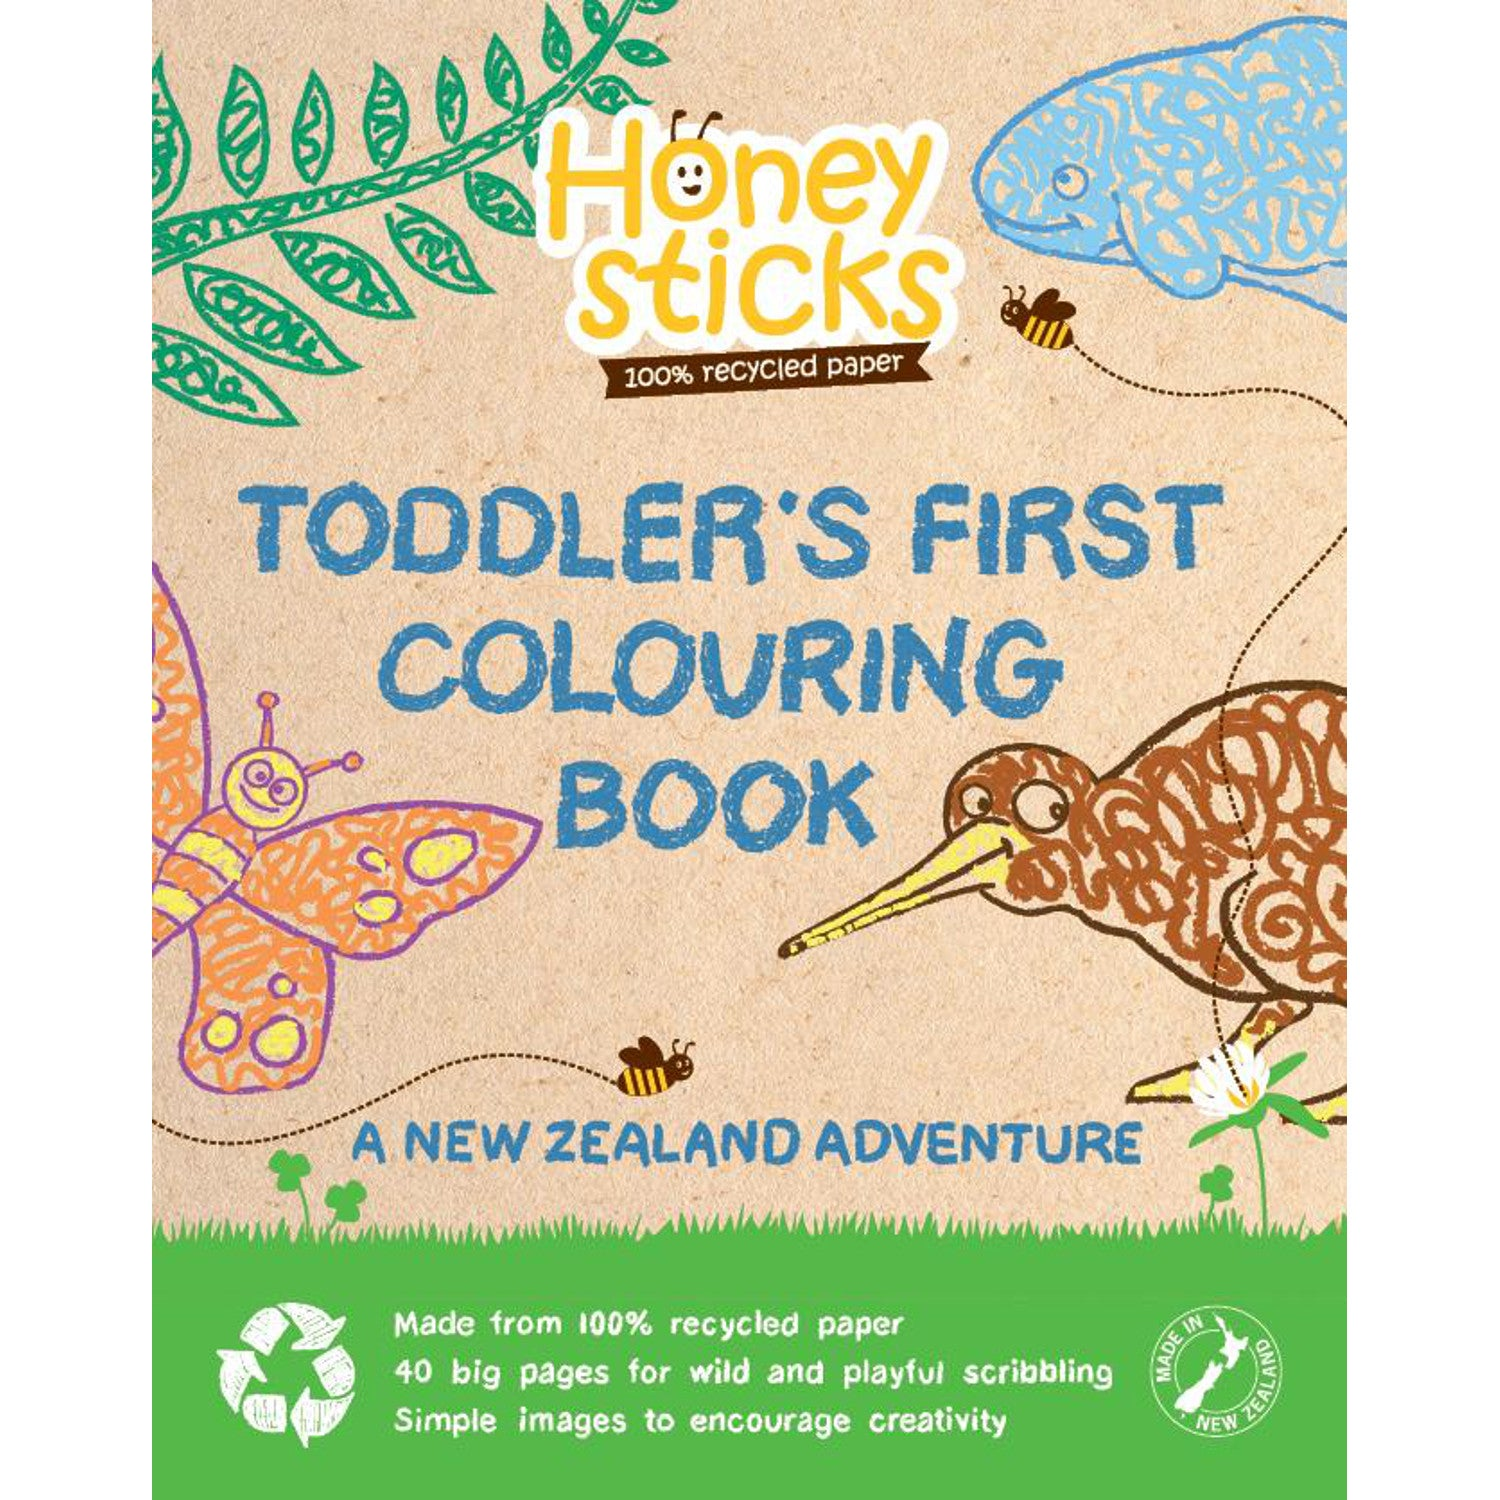 Honeysticks Toddler's First Colouring Book Kiwi Adventure